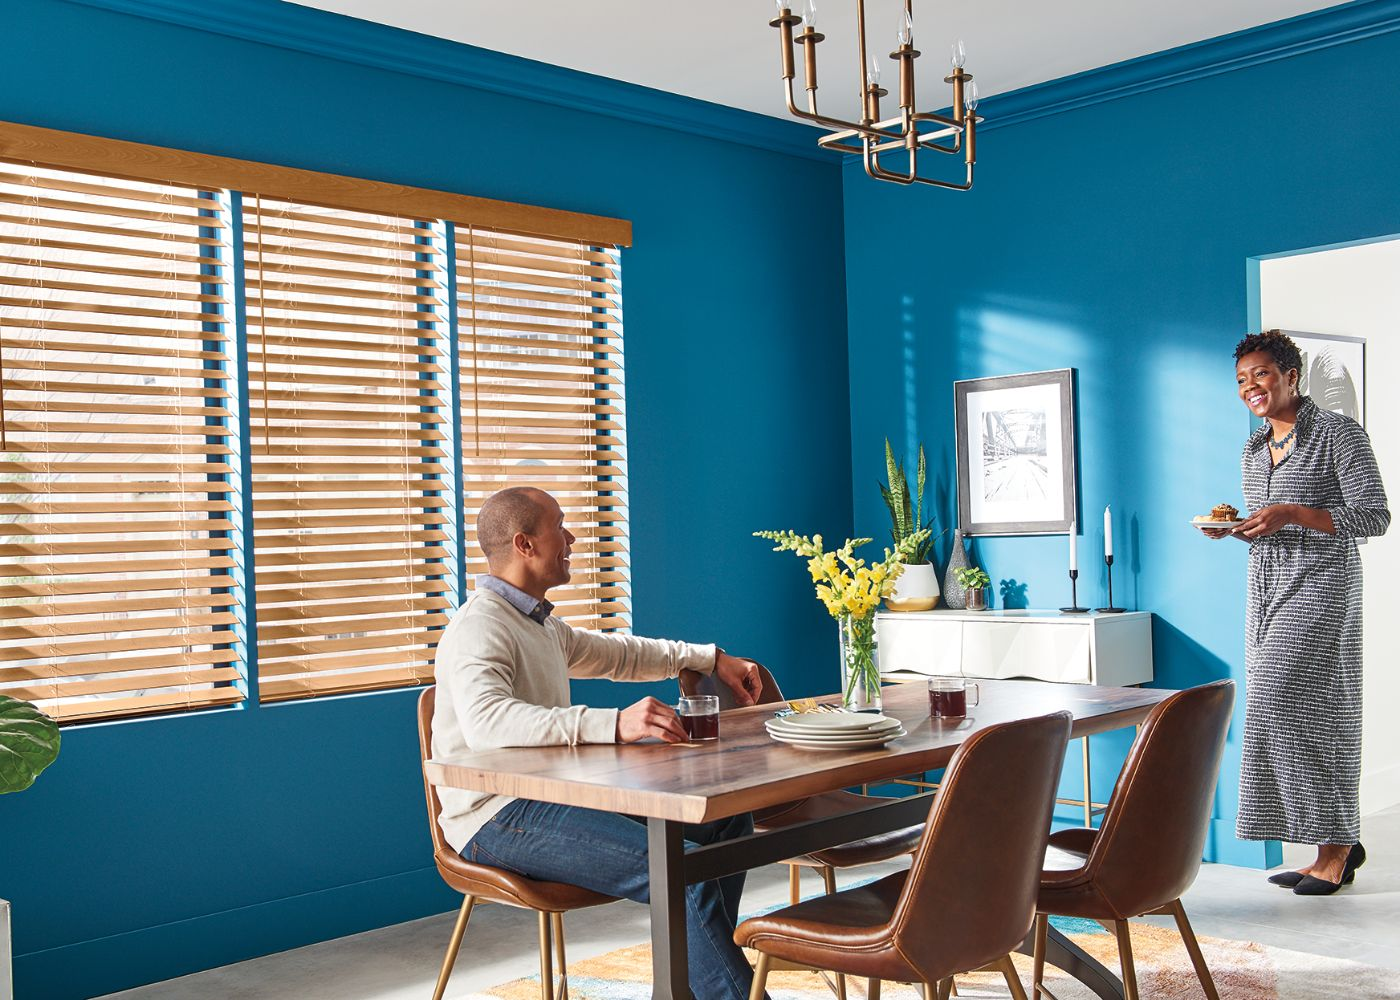 graber-3030-wood-blinds-ls18-v2-cropped.jpg